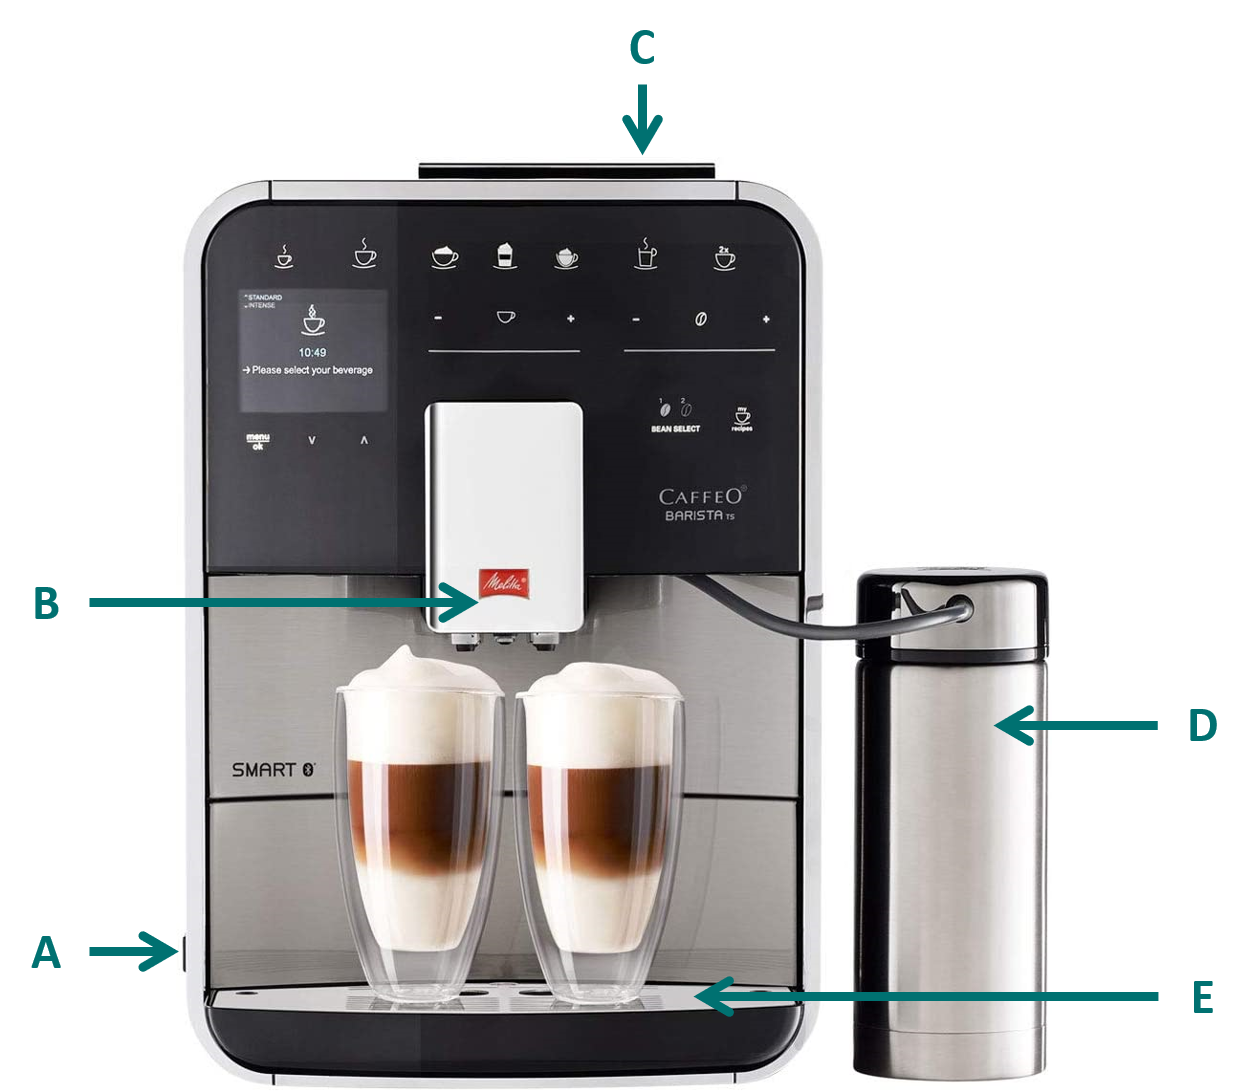 Labled image of the Barista TS Smart coffee machine from Melitta